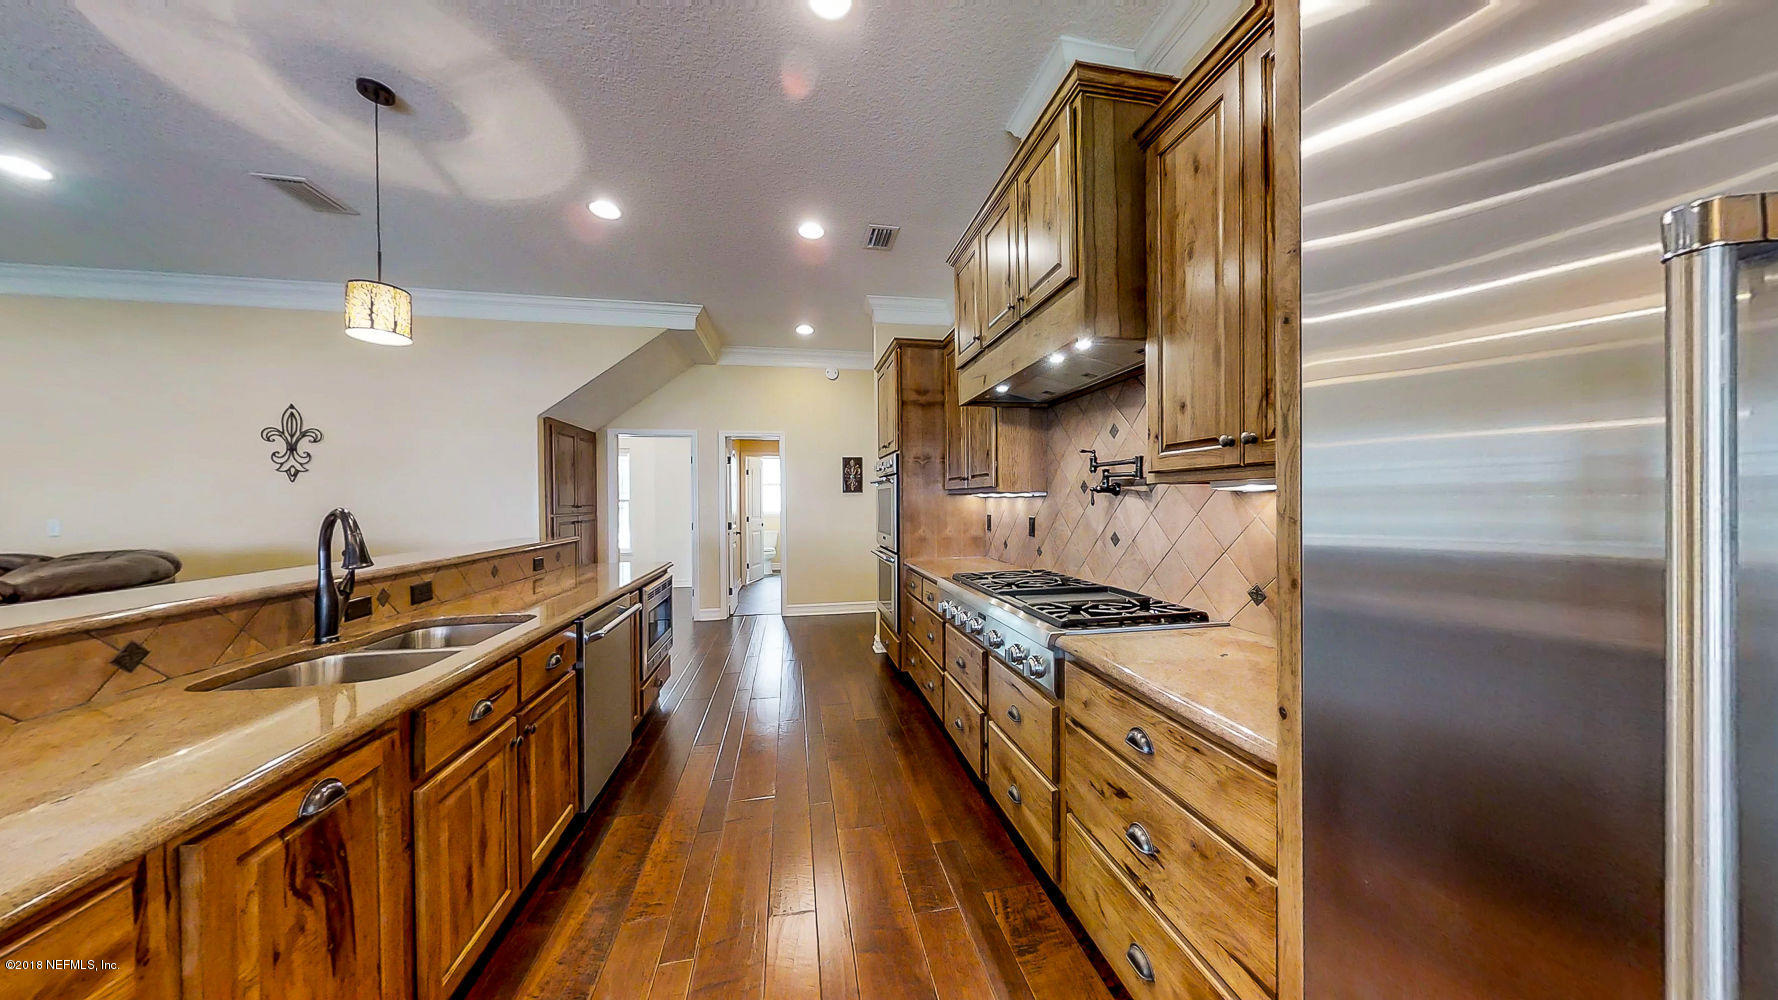 5817 CO RD 352, KEYSTONE HEIGHTS, FLORIDA 32656, 4 Bedrooms Bedrooms, ,3 BathroomsBathrooms,Residential - single family,For sale,CO RD 352,940908